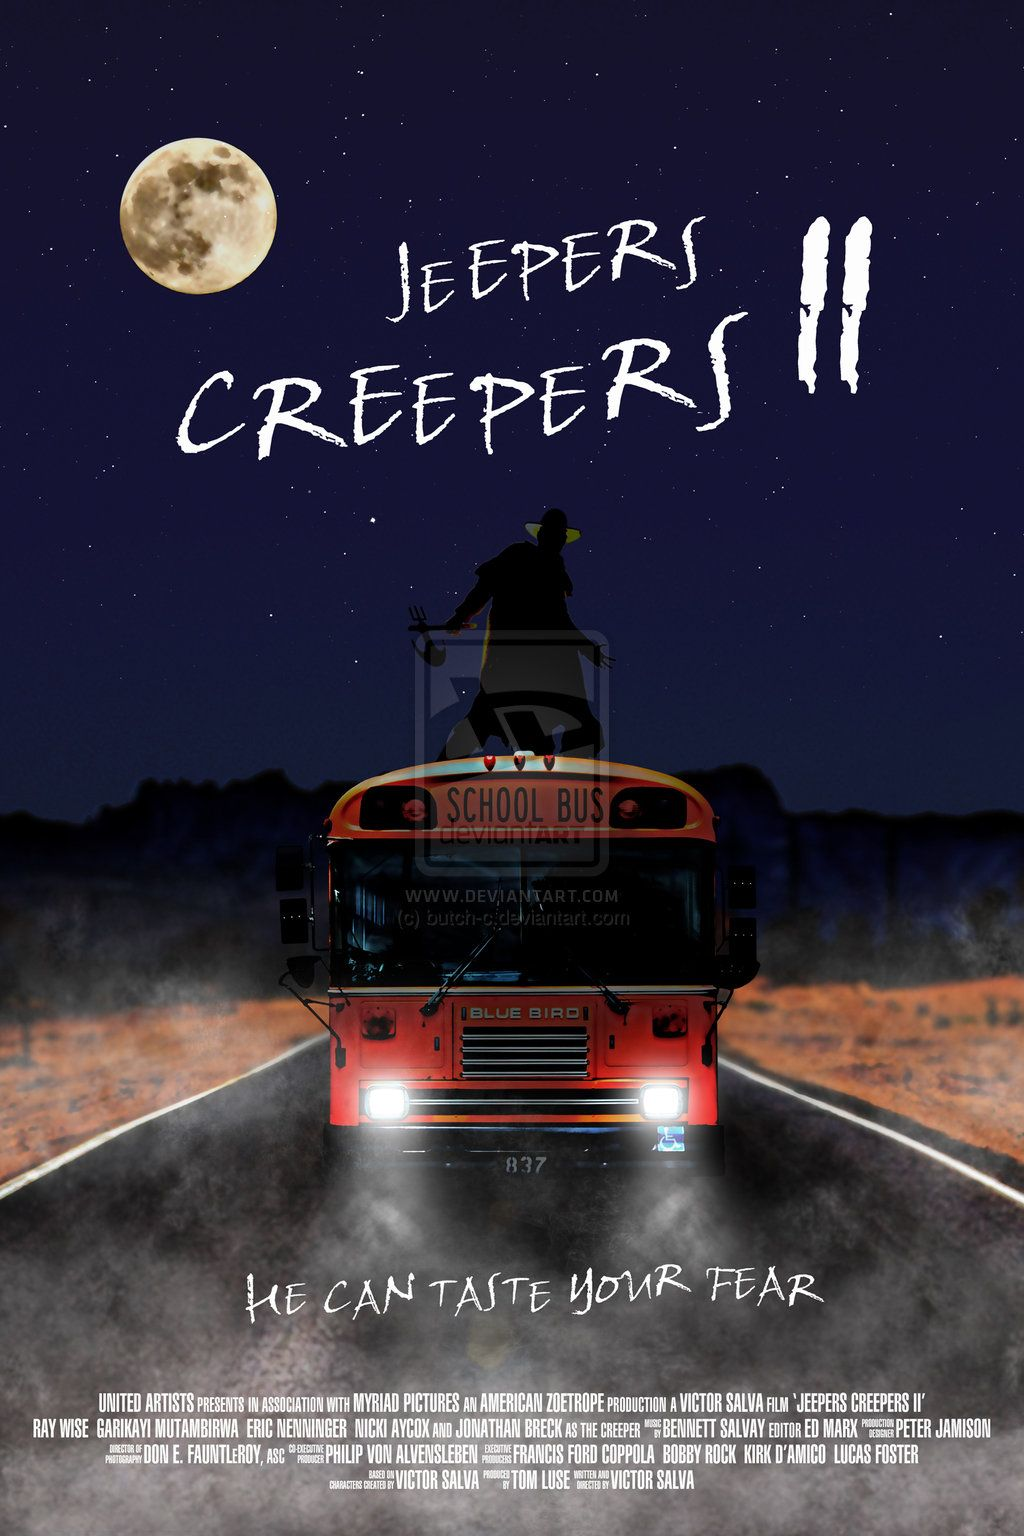 Jeepers Creepers In 2020 Jeepers Creepers Horror Posters Tv Horror